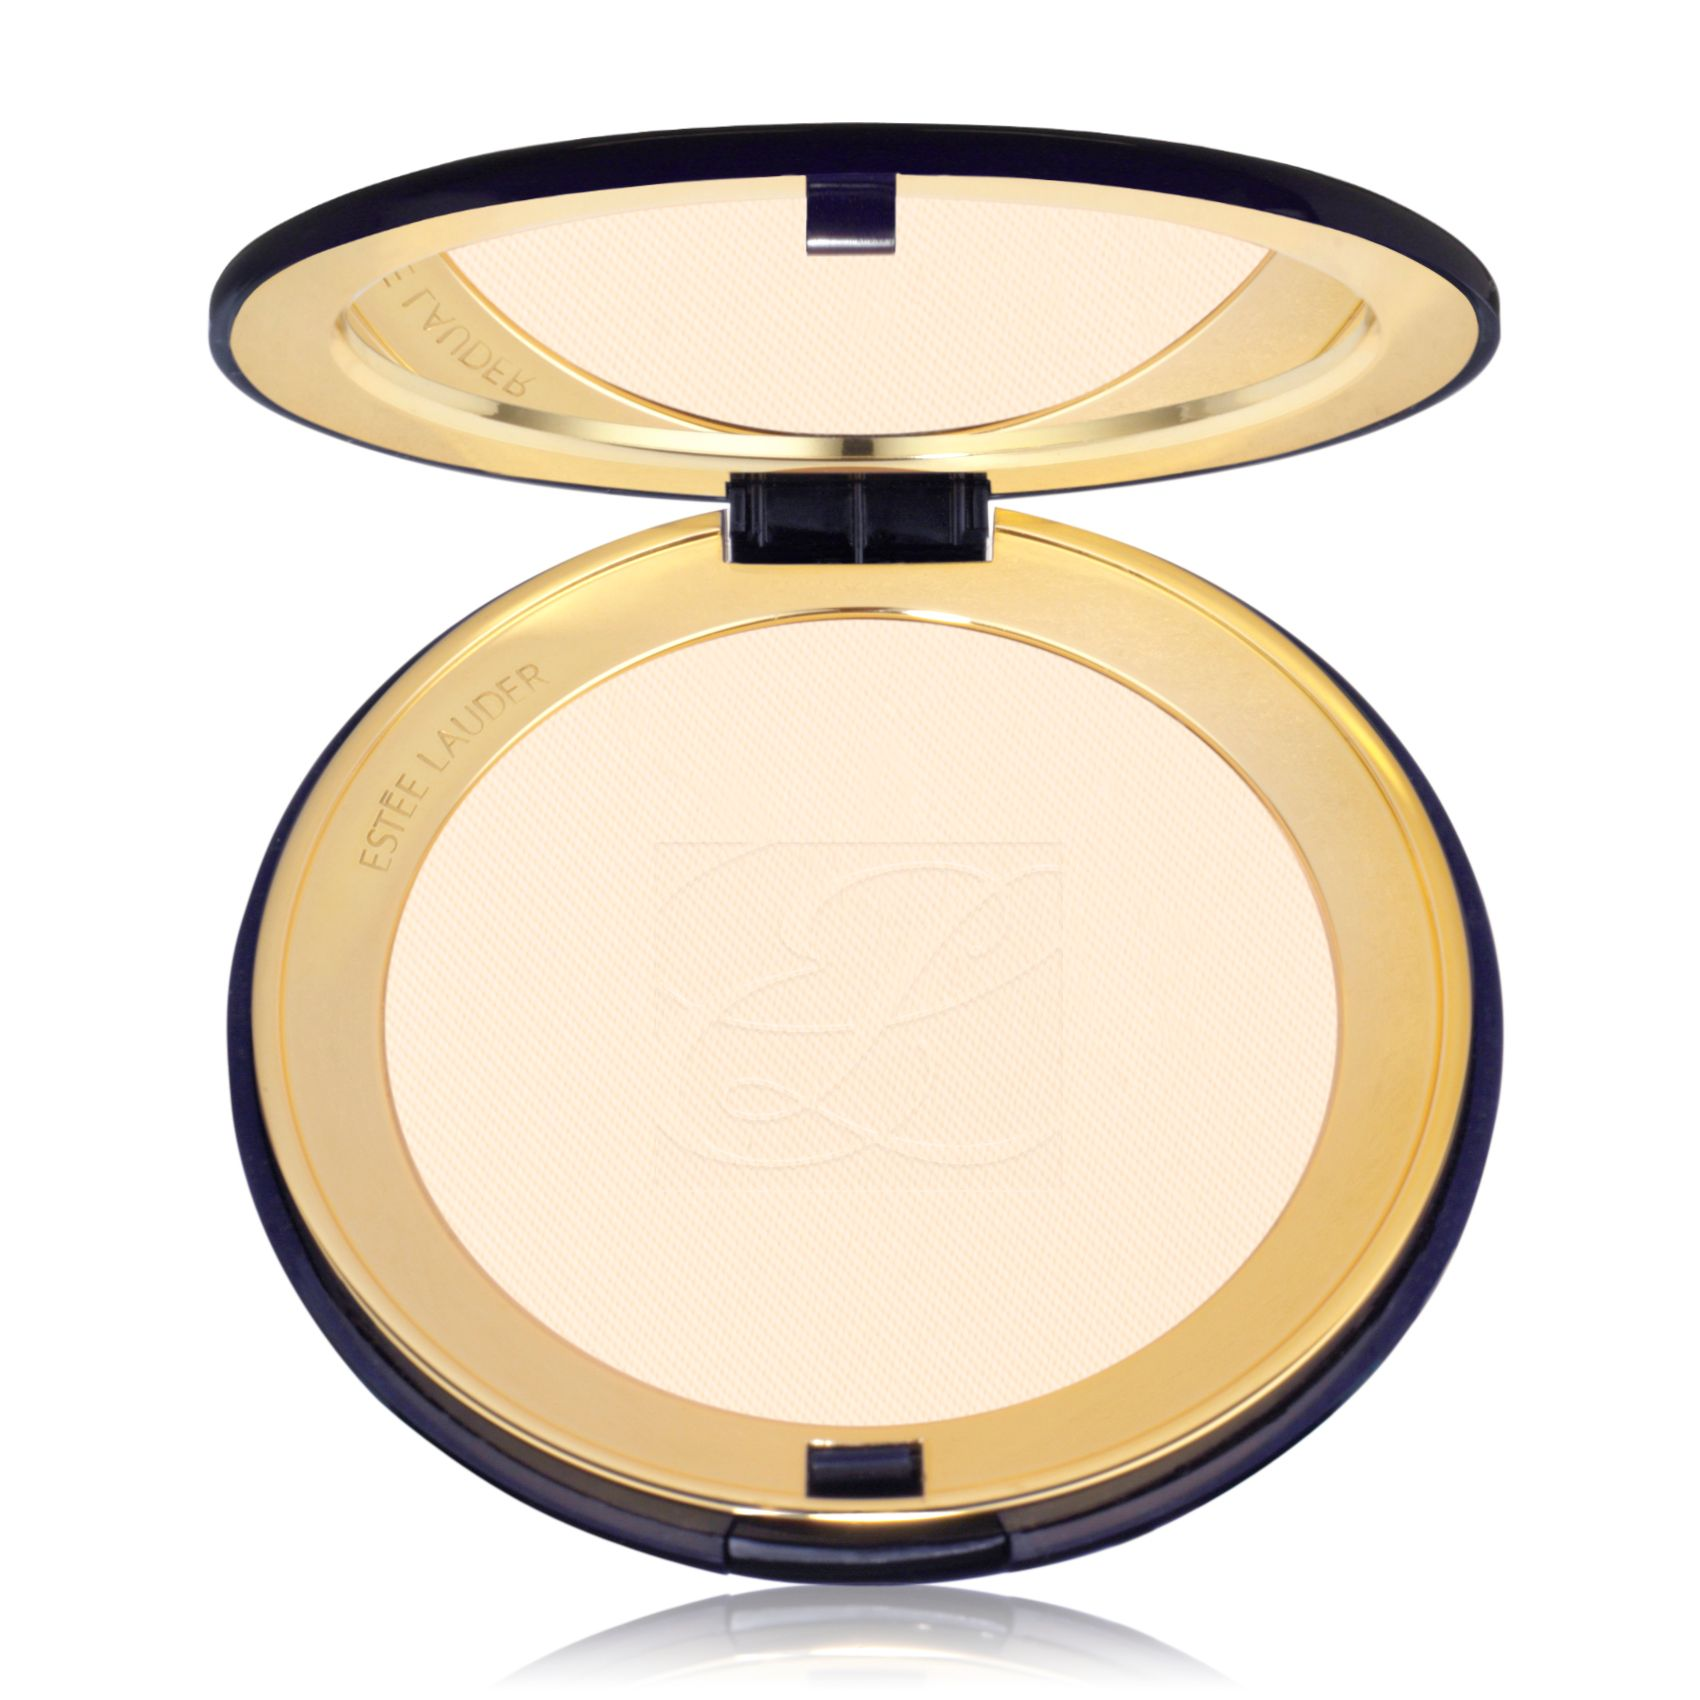 Lucidity Translucent Pressed Powder